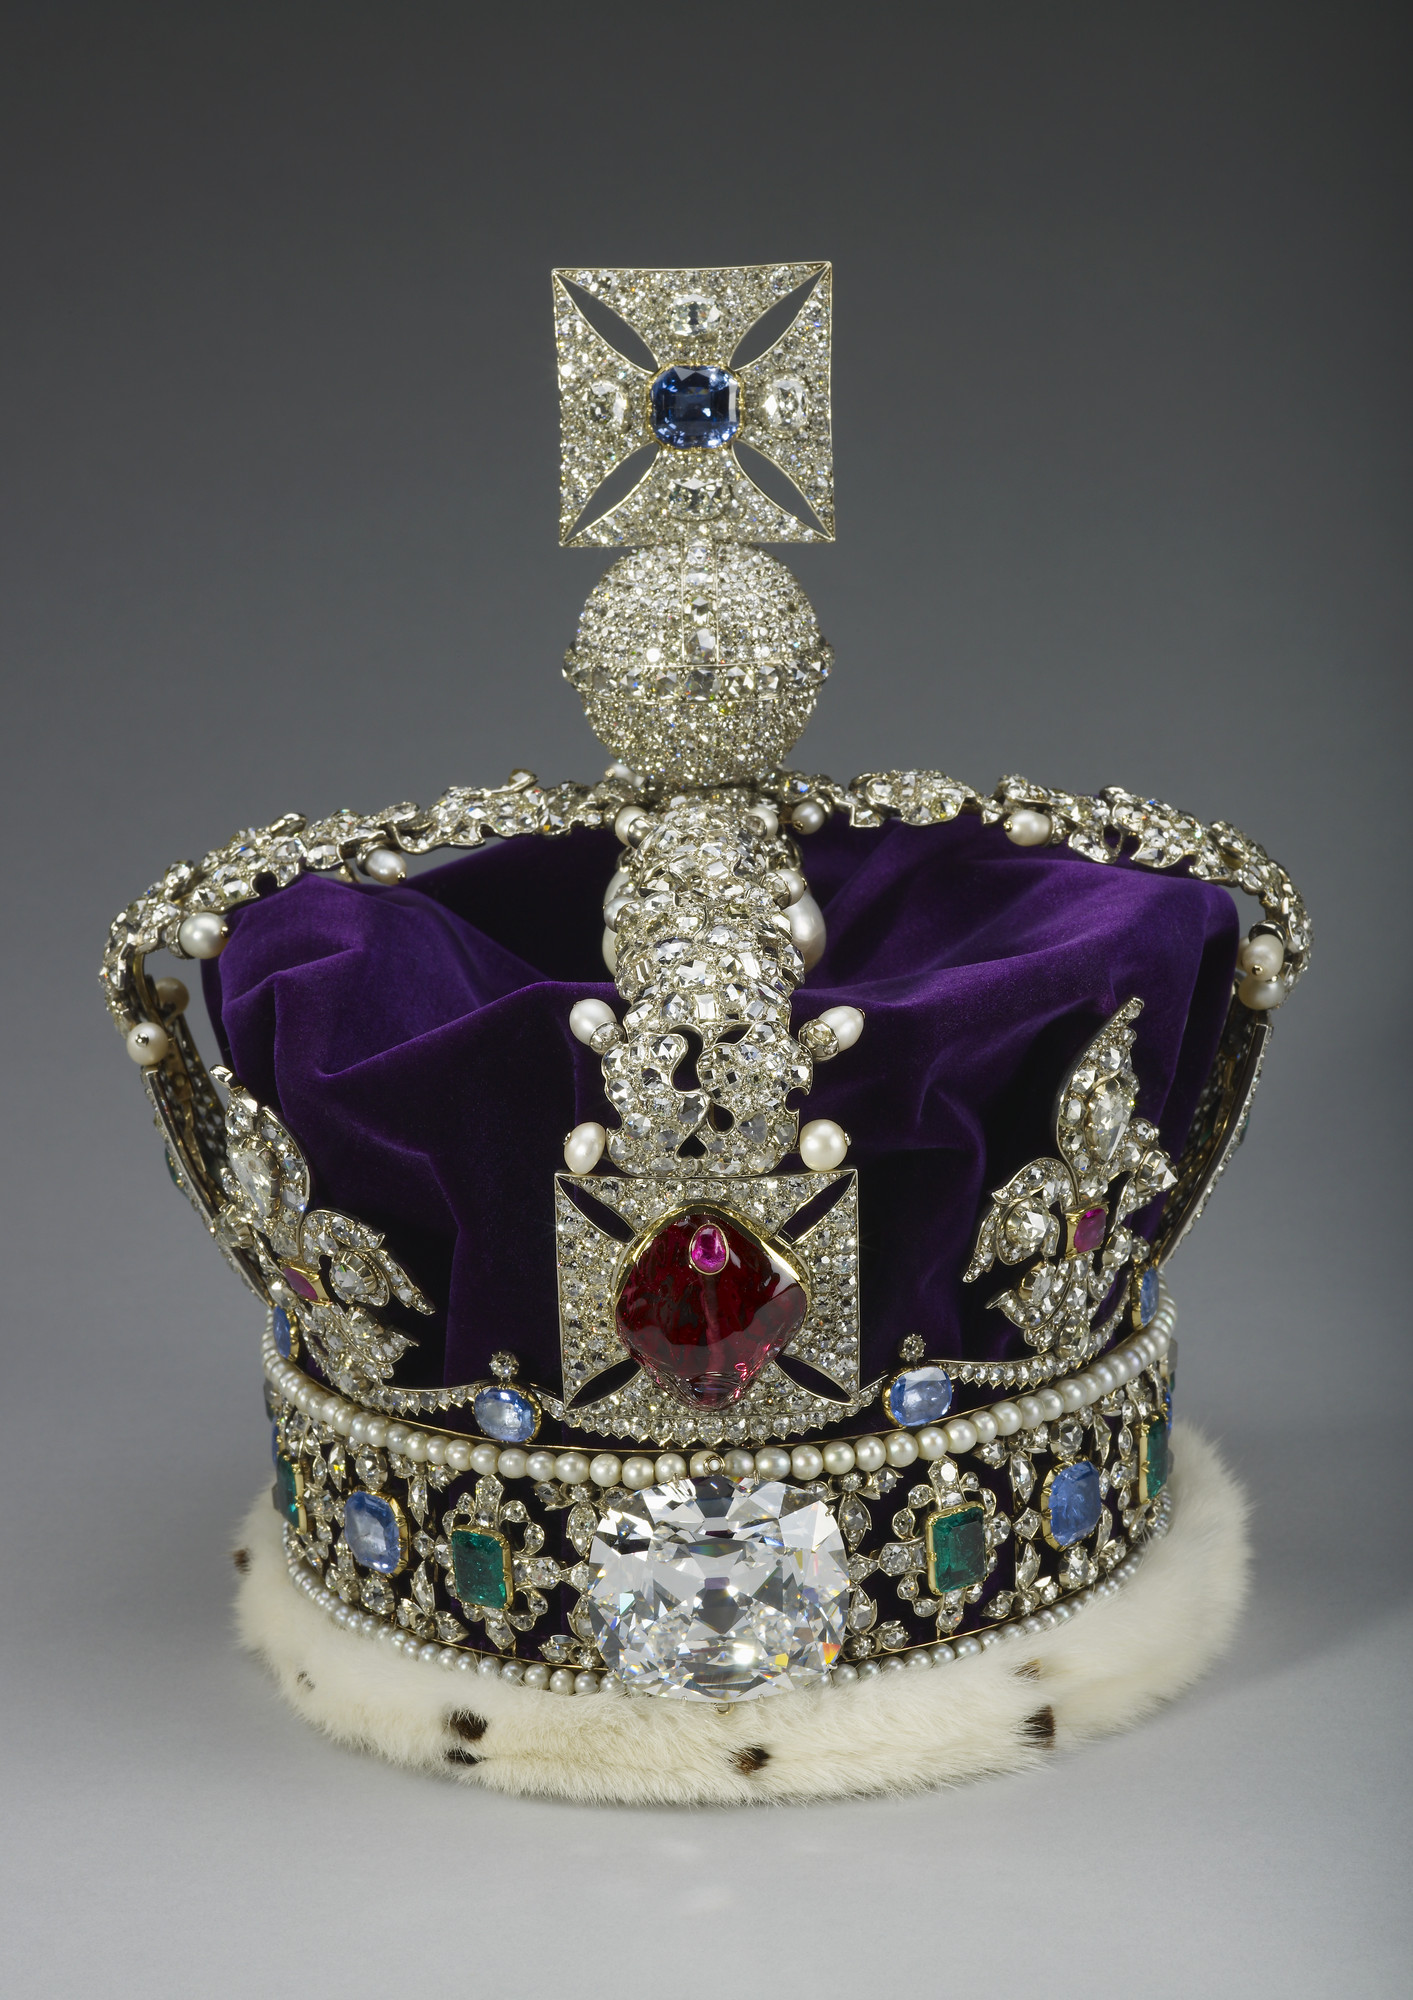 Garrad & Co., The Imperial State Crown; The Art of Jewels: Spinel